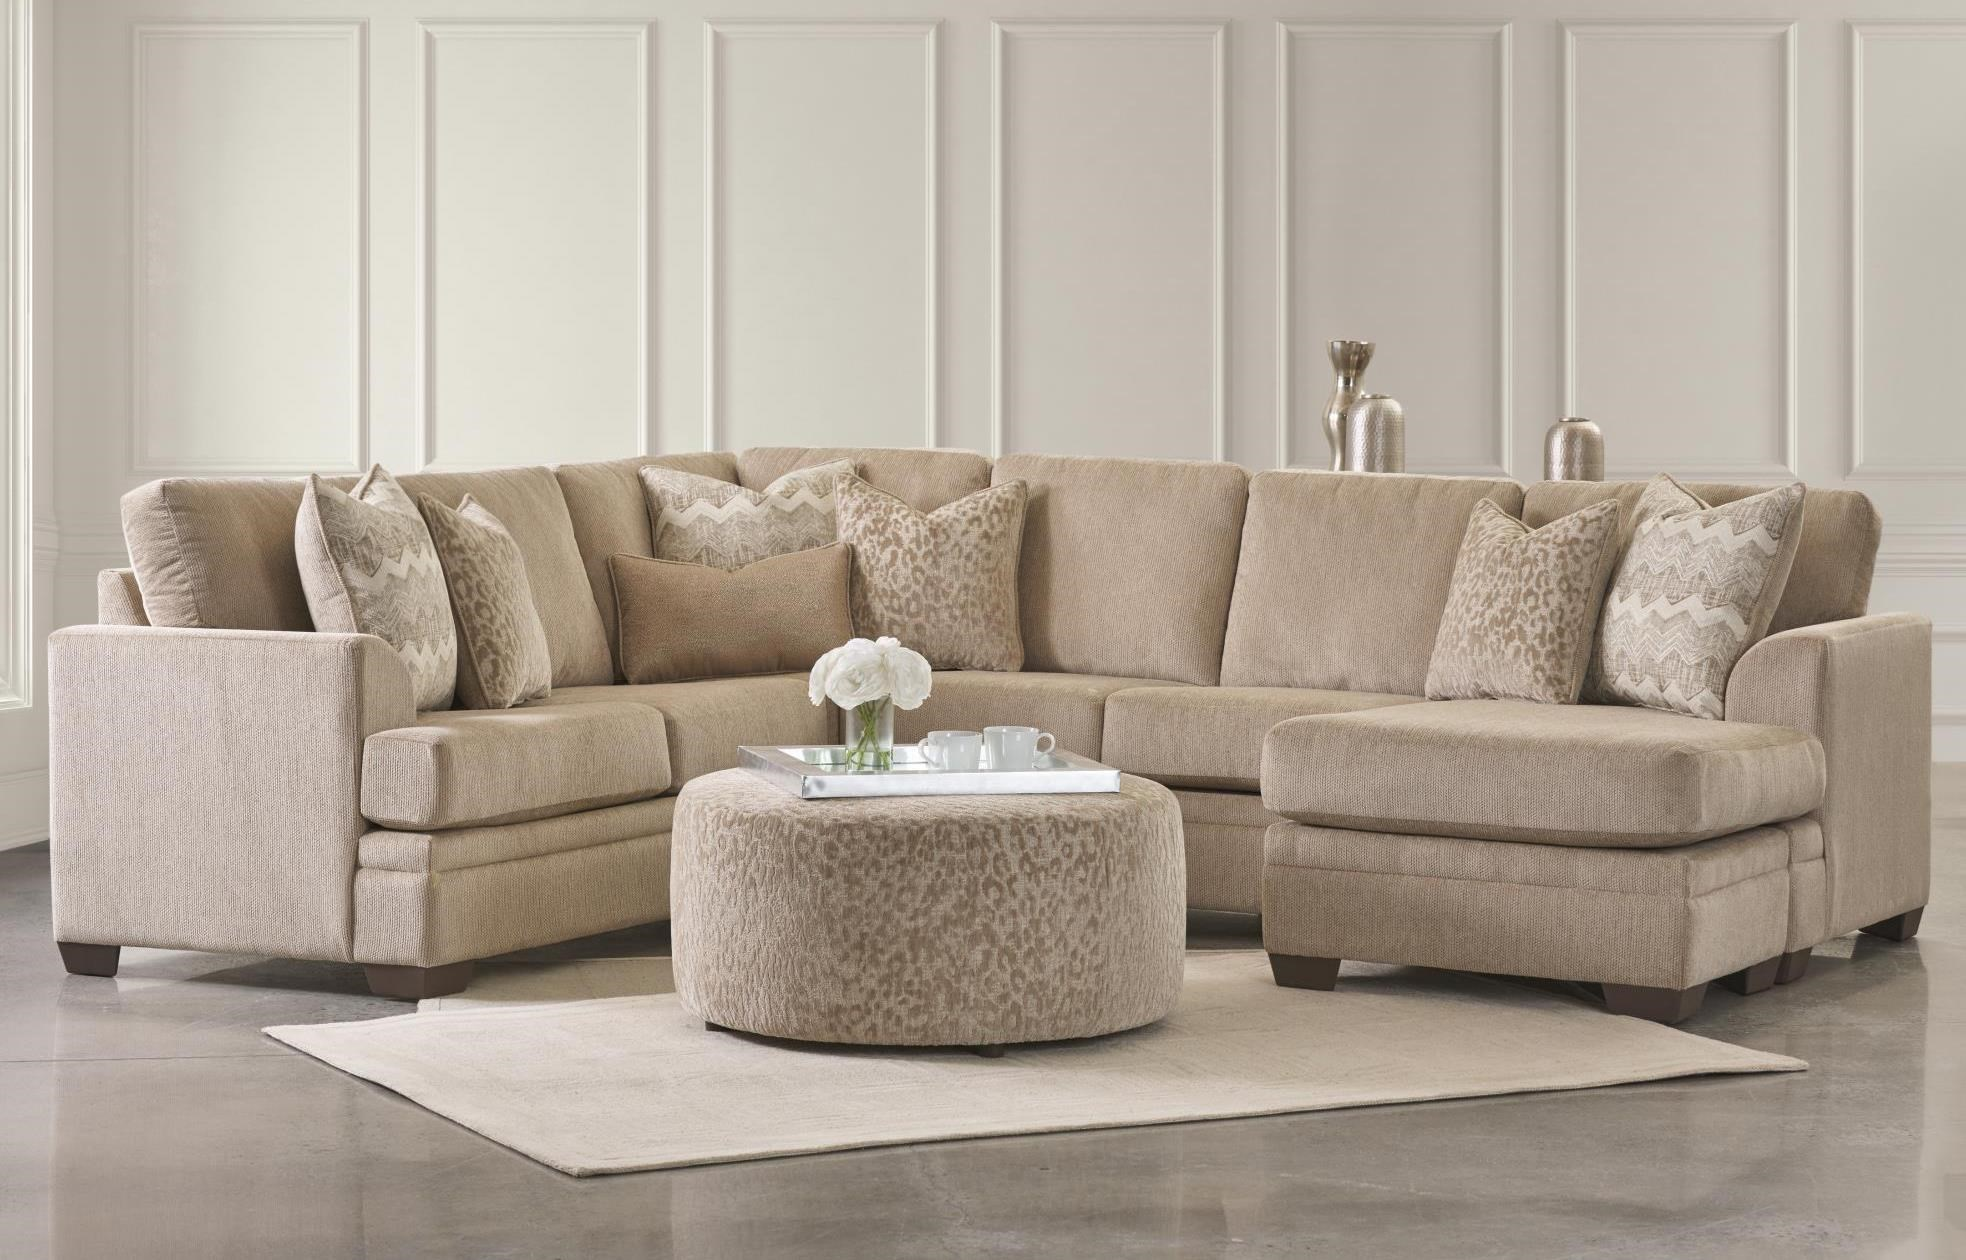 Venice Sectional Chaise Sofa w/ Ottoman Set at Rotmans